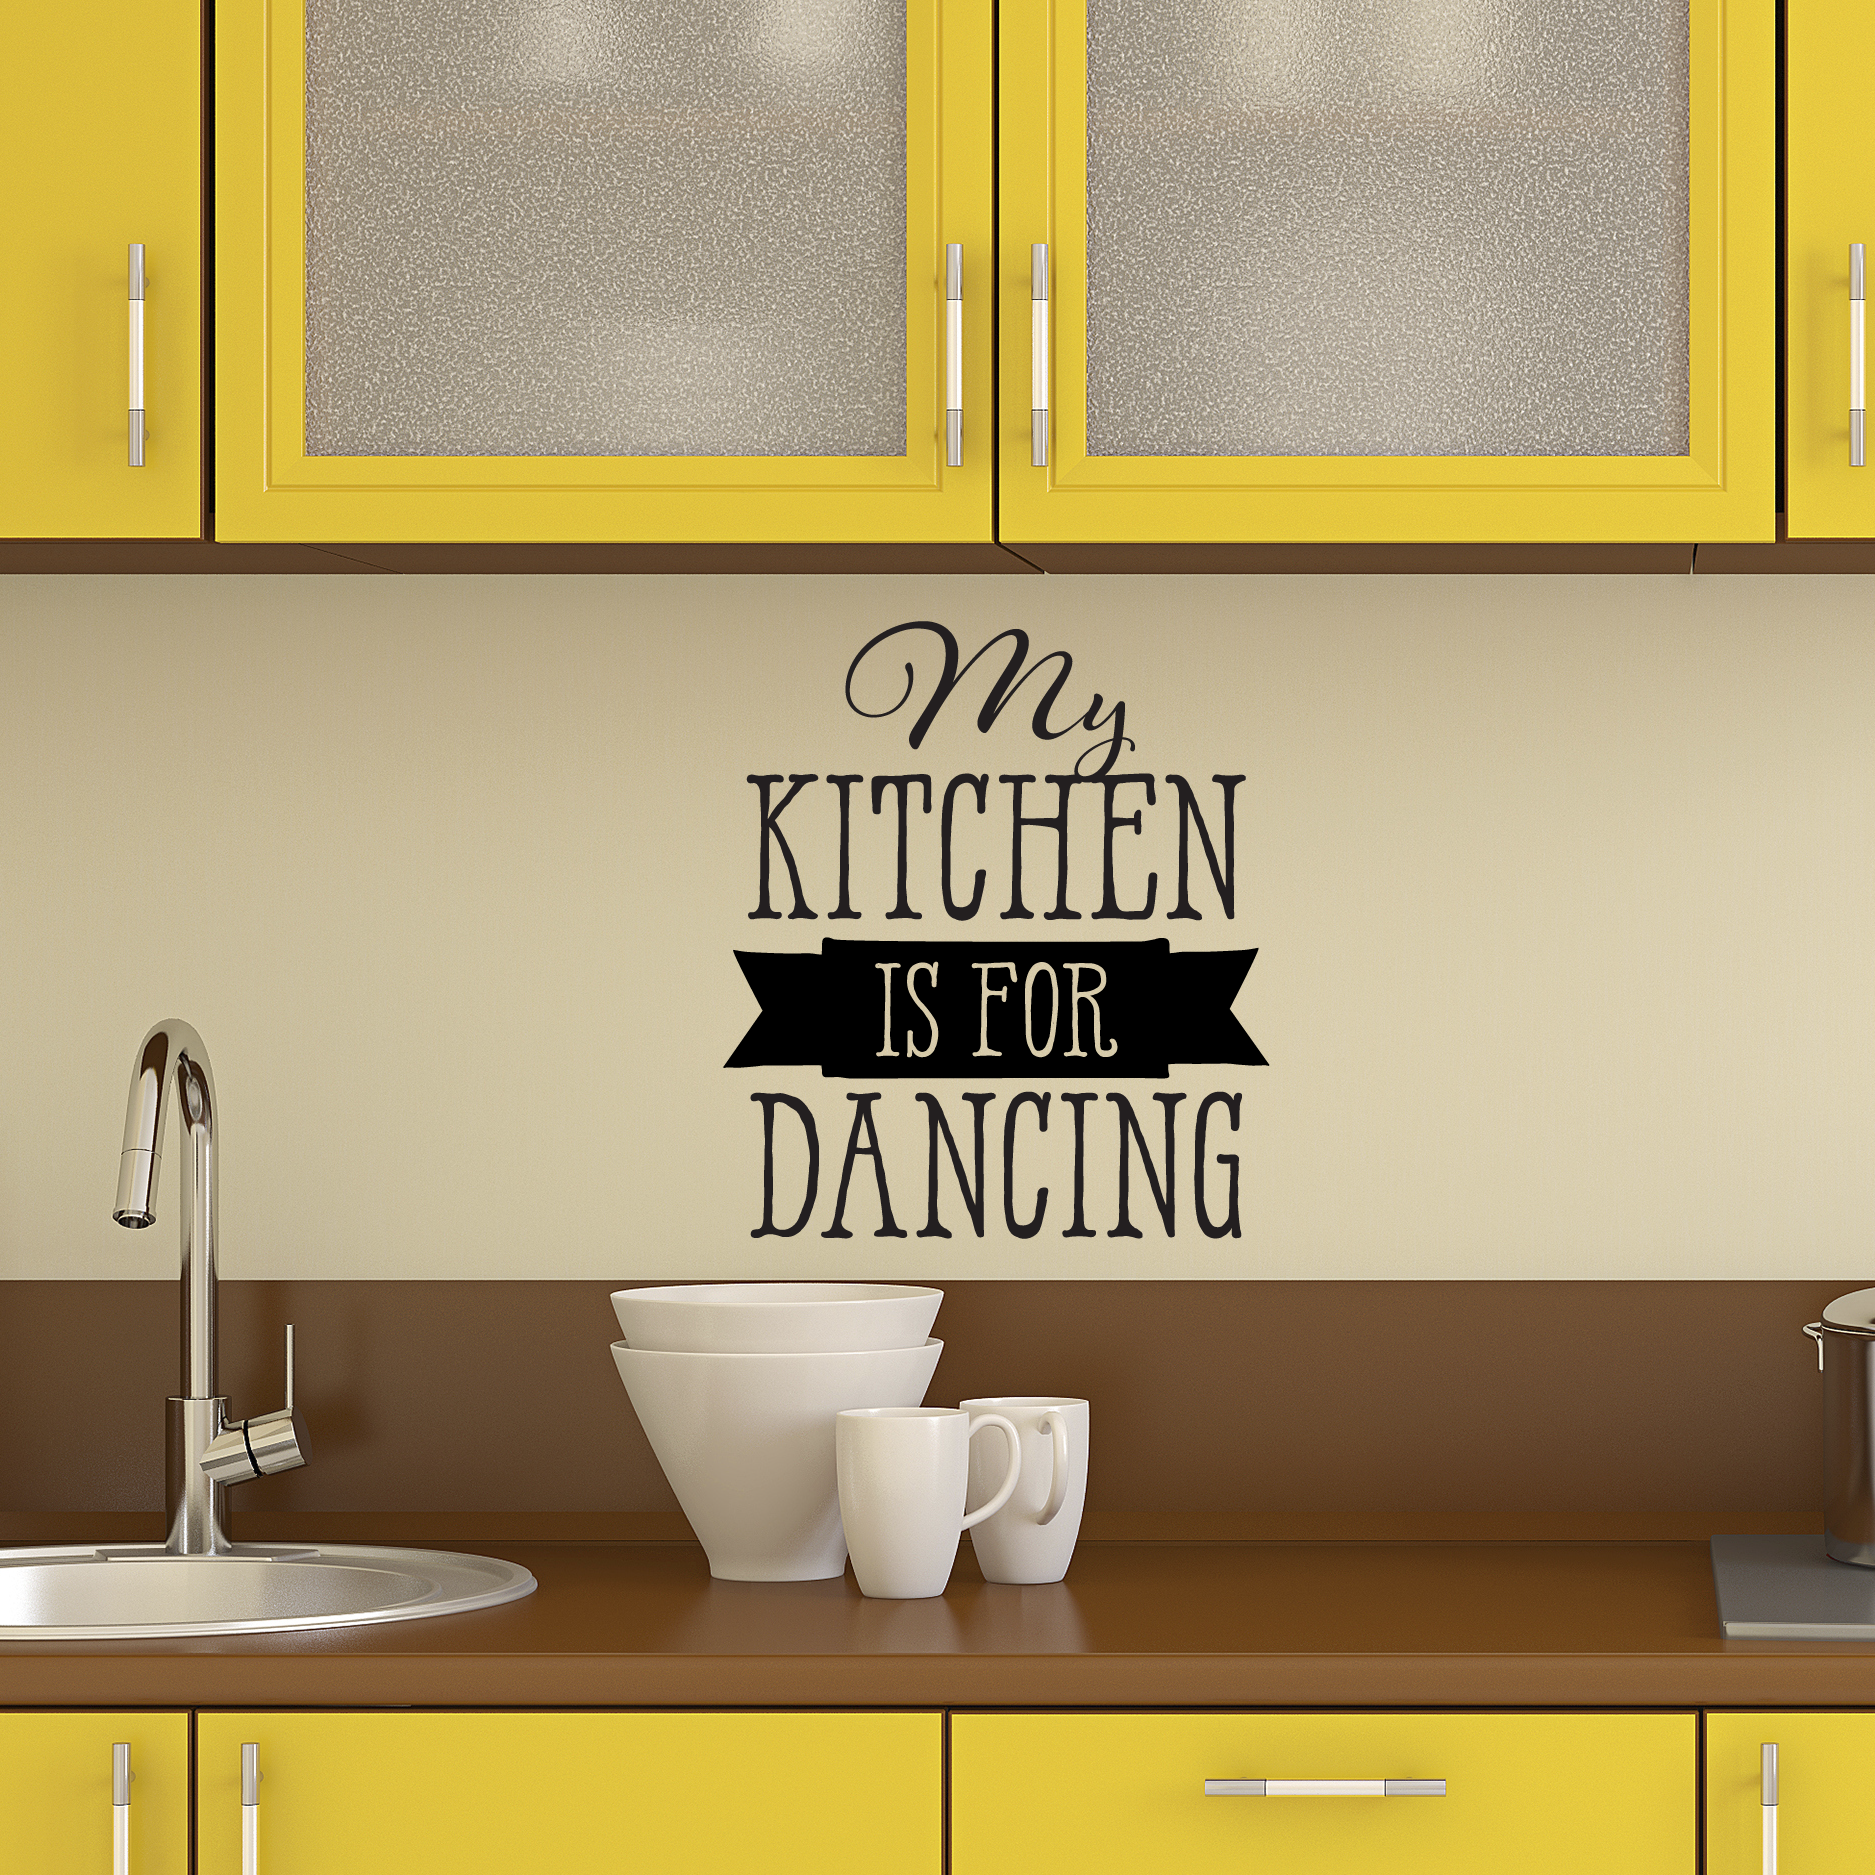 My Kitchen Is For Dancing Wall Quotes™ Decal | WallQuotes.com for Wall Sticker Quotes Png  14lpgtk